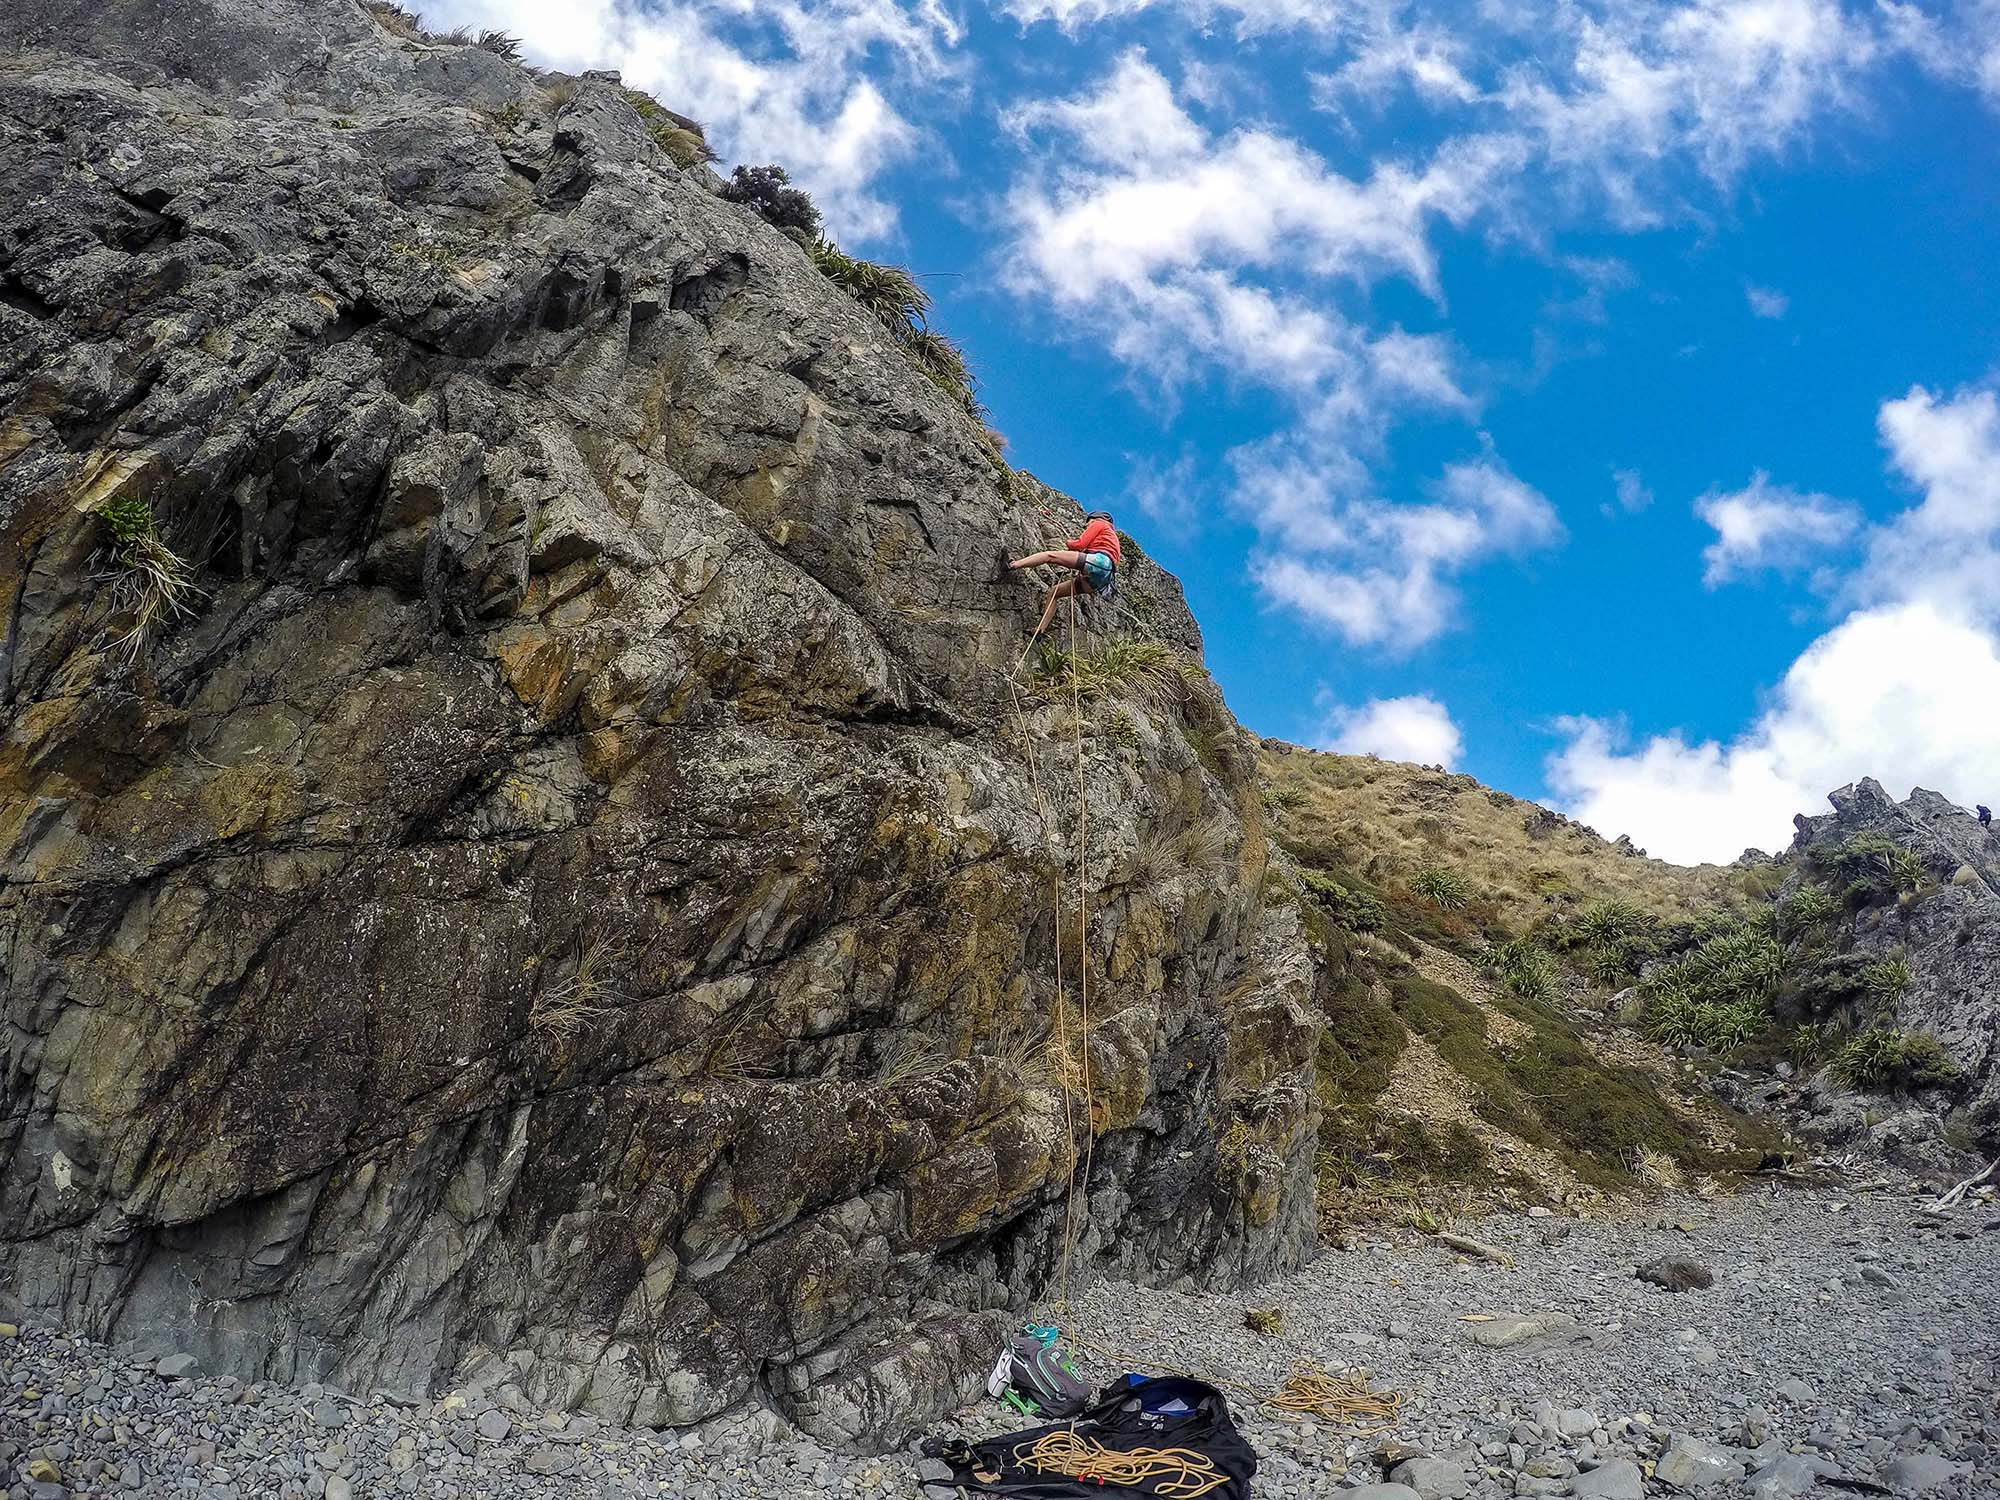 wellington_baring_head_rock_climbing.jpg